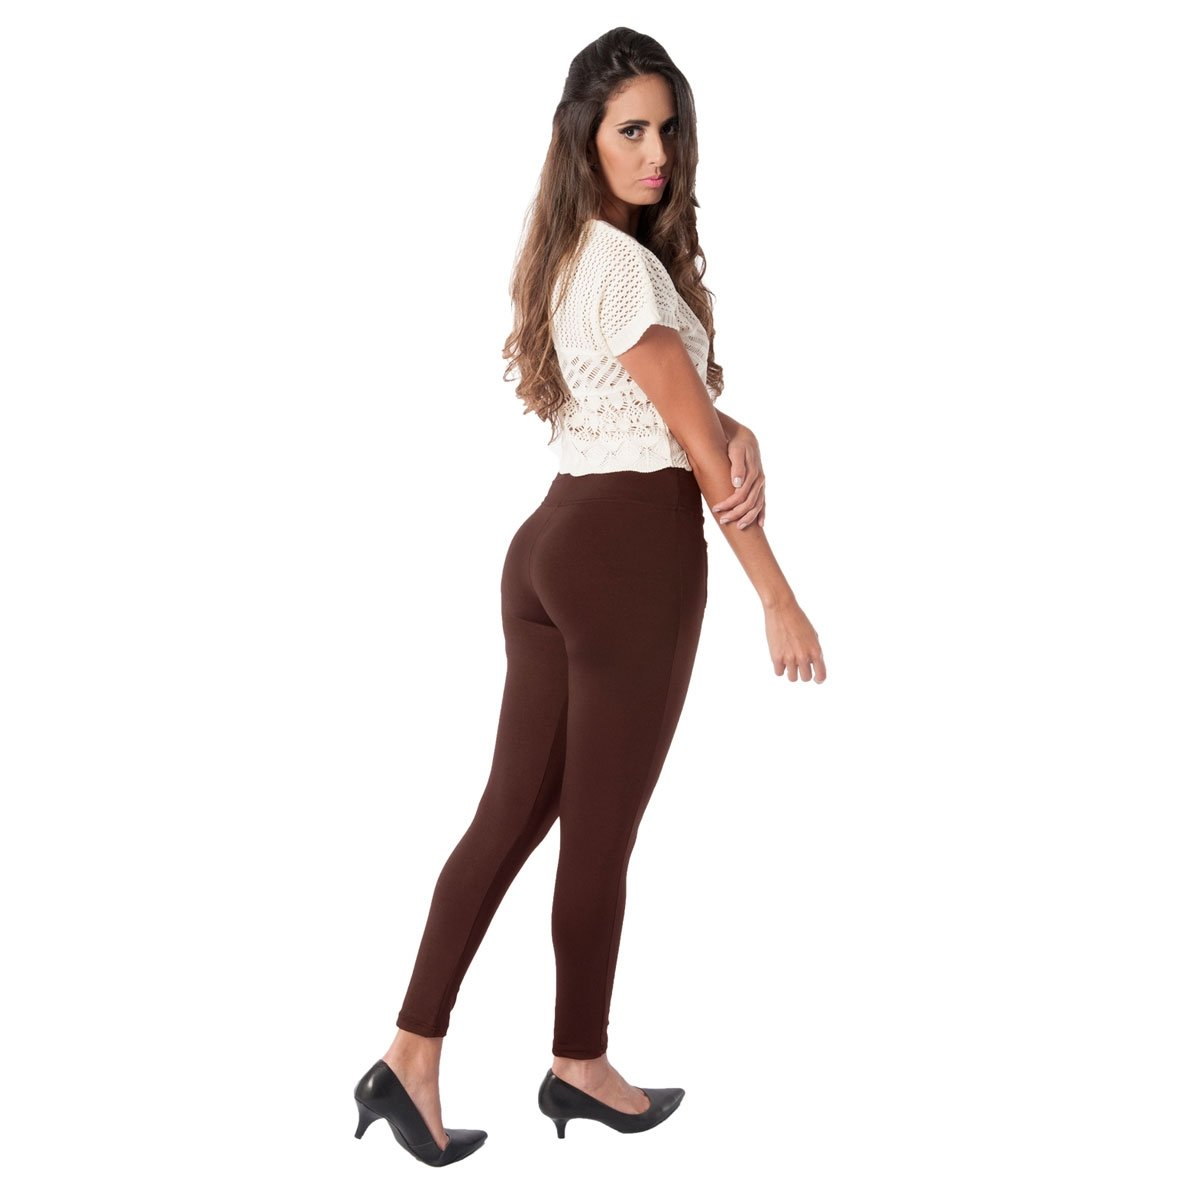 Modas Legging Legging Shop Marrom Marrom Legging Modas Shop Shop 0wAXx